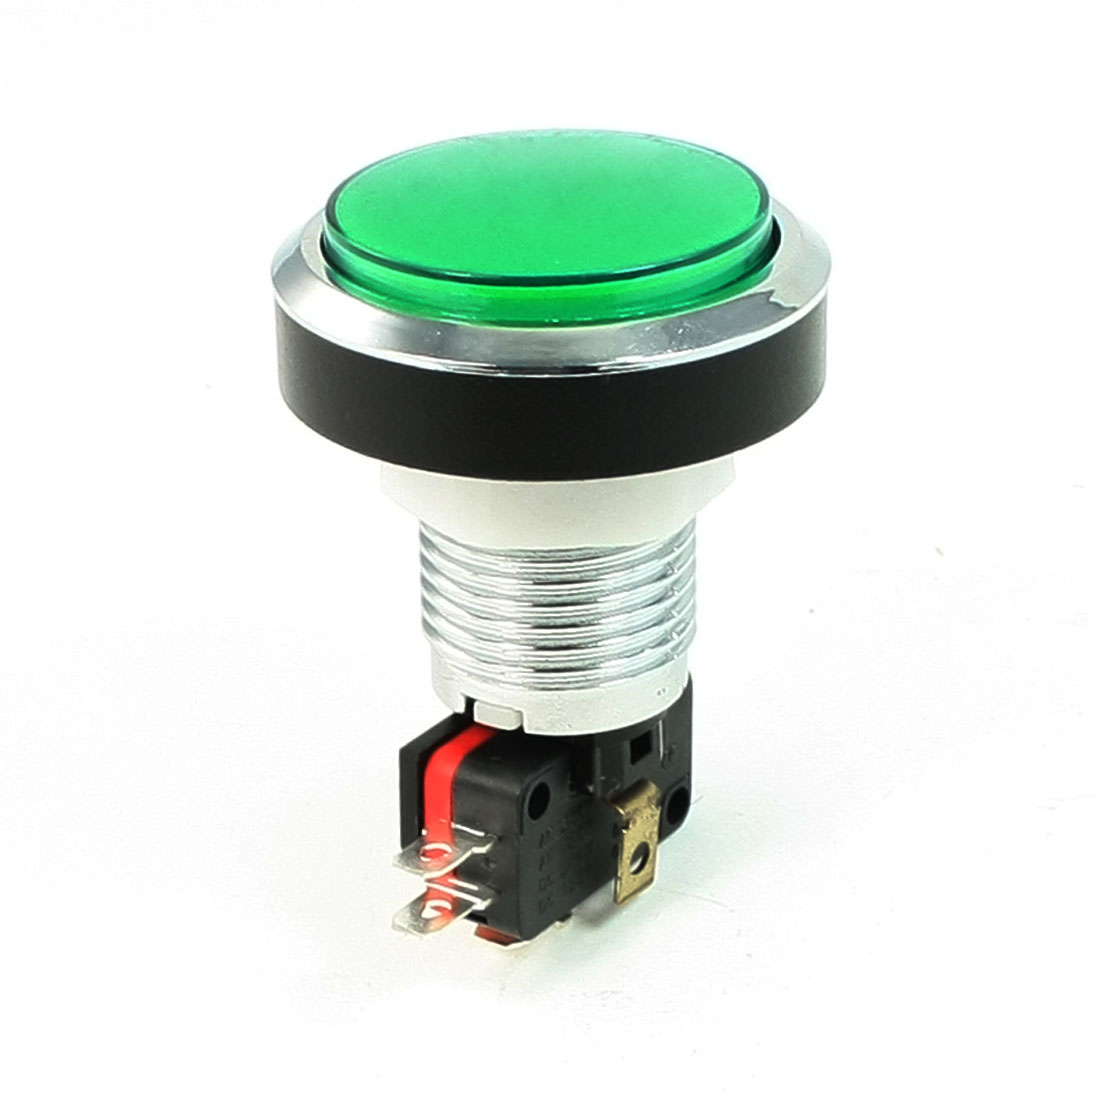 Metal Ring Circled Green Cap Momentary Push Button Switch AC 125V/250V 15A